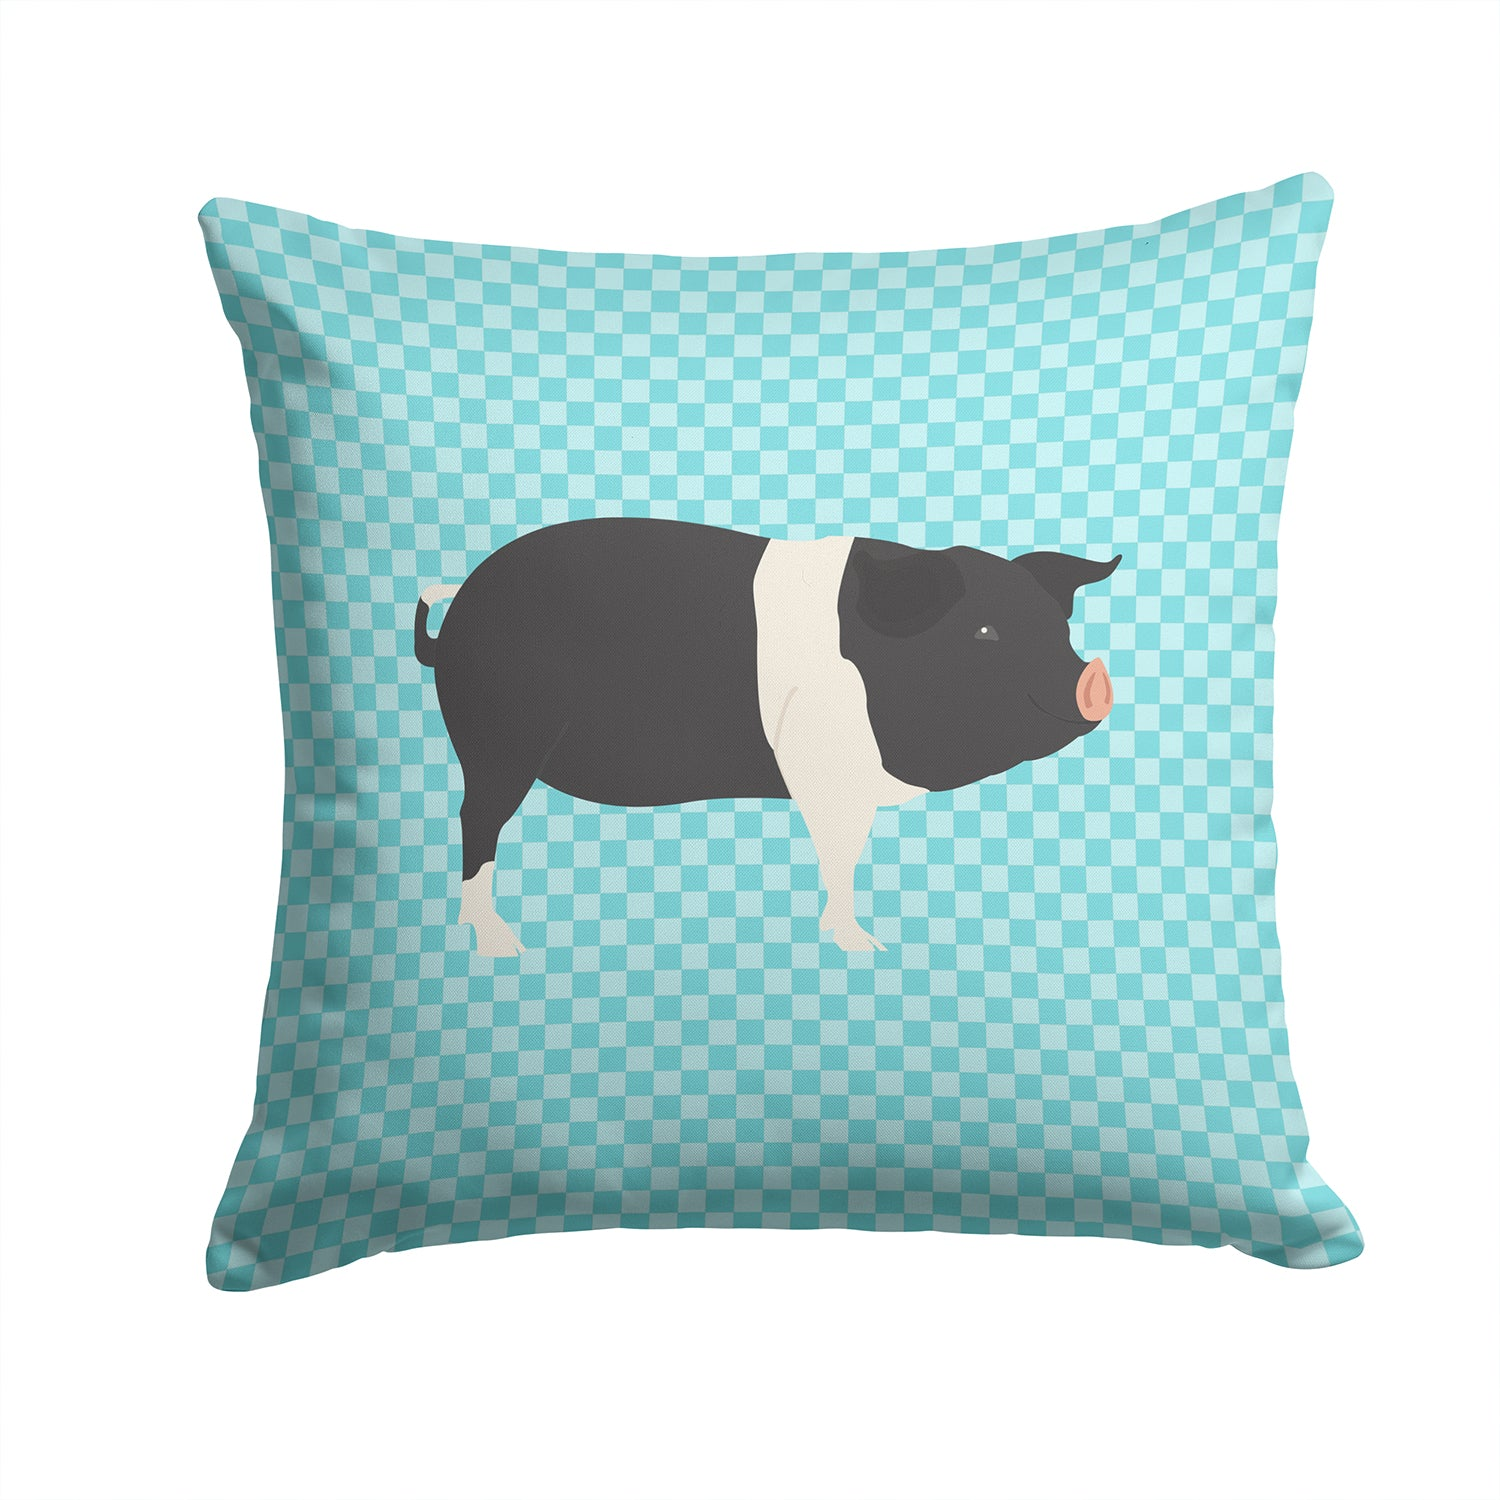 Hampshire Pig Blue Check Fabric Decorative Pillow BB8113PW1414 by Caroline's Treasures